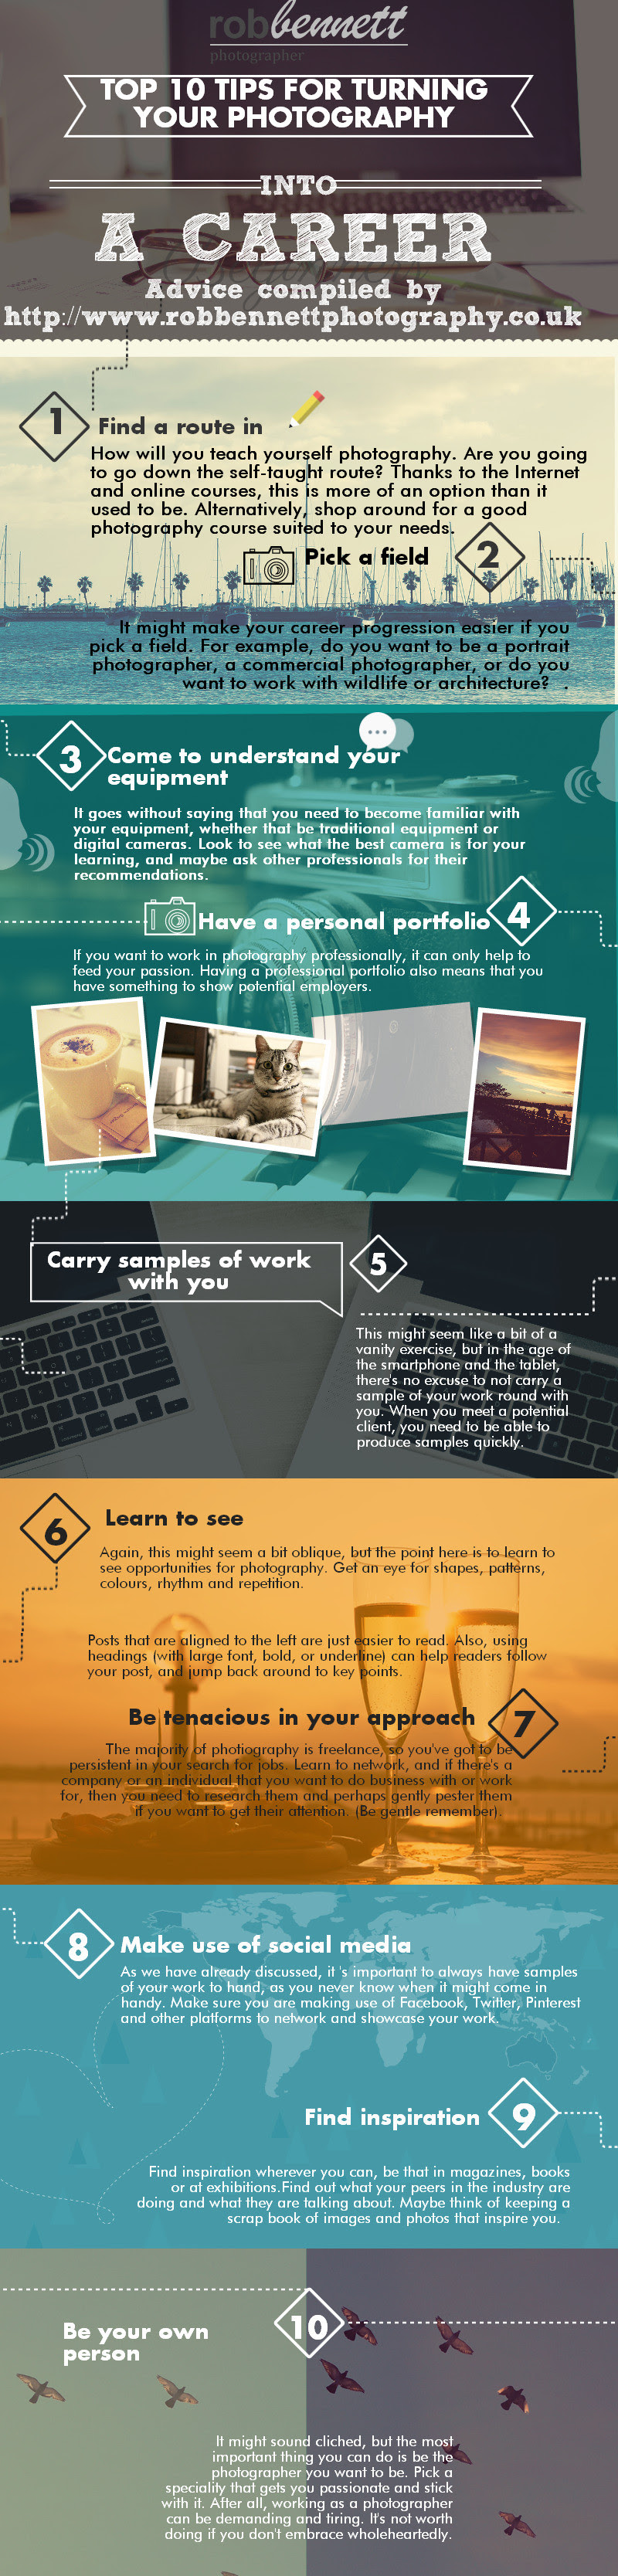 Infographic: Top 10 Tips for Turning Photography into a Career #infographic